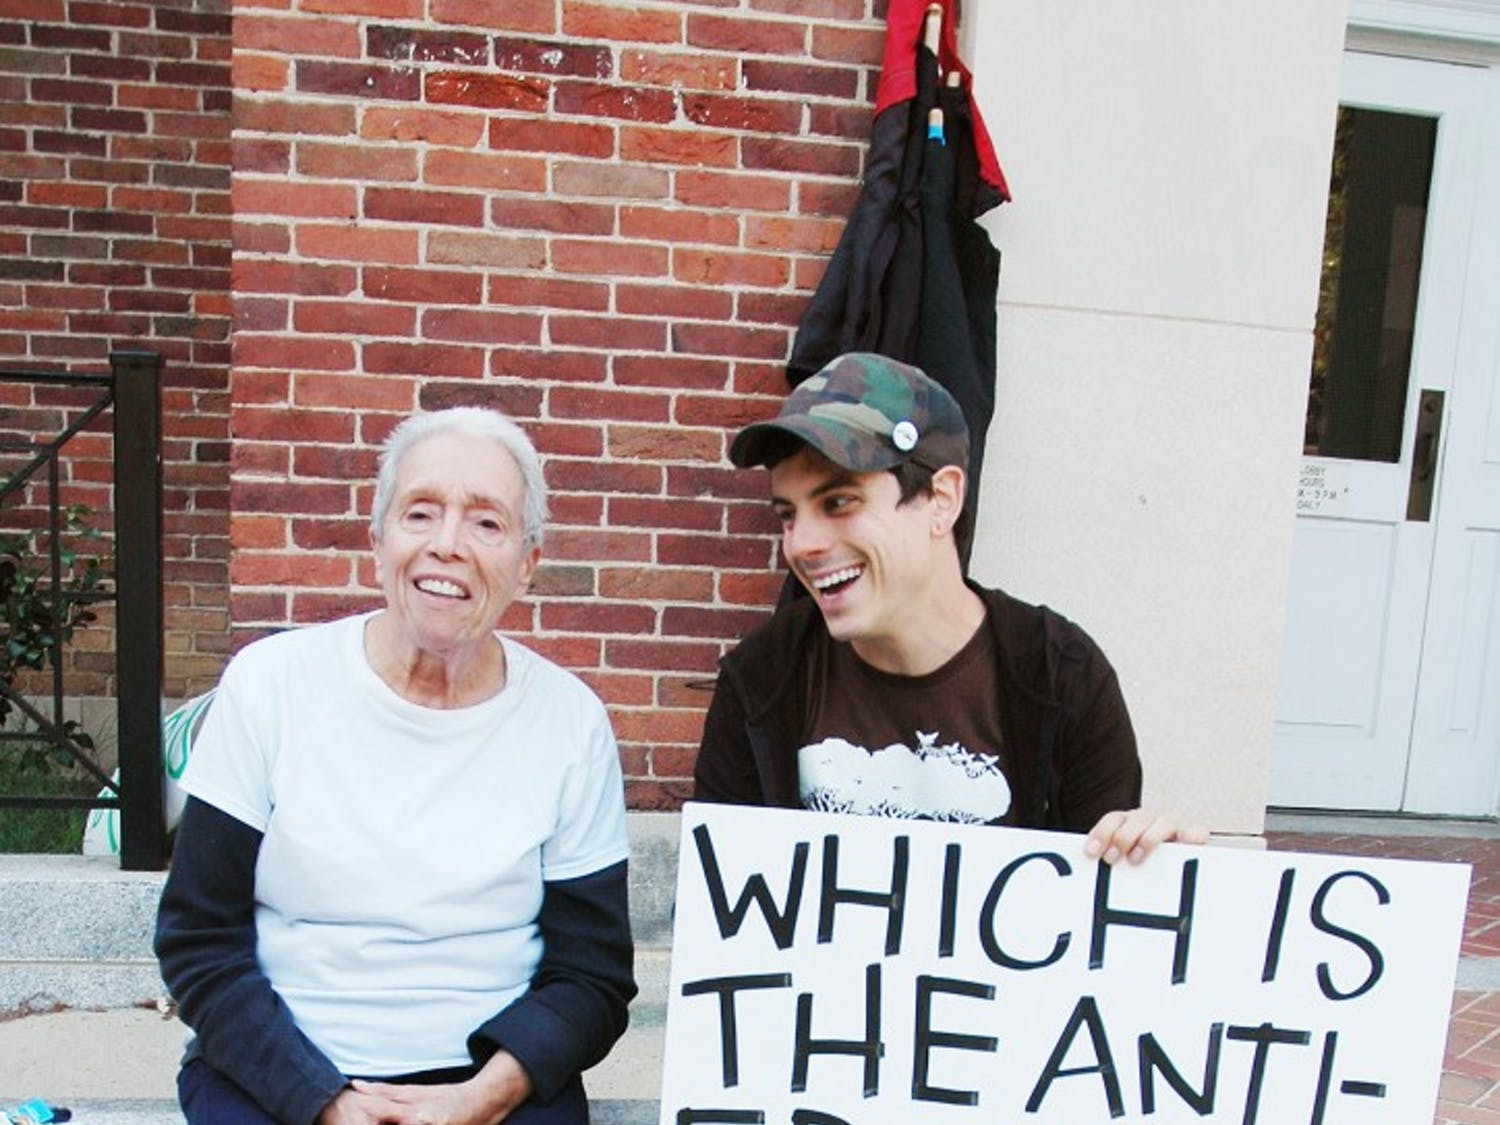 The Occupy Chapel Hill movement celebrates its 1st anniversary. Members handed out pamphlets and held banners to demonstrate their anti-government beliefs.Miriam Thompson, post graduate, and Mike Cohen, 28, discuss relevant issues to the Occupy Movement.